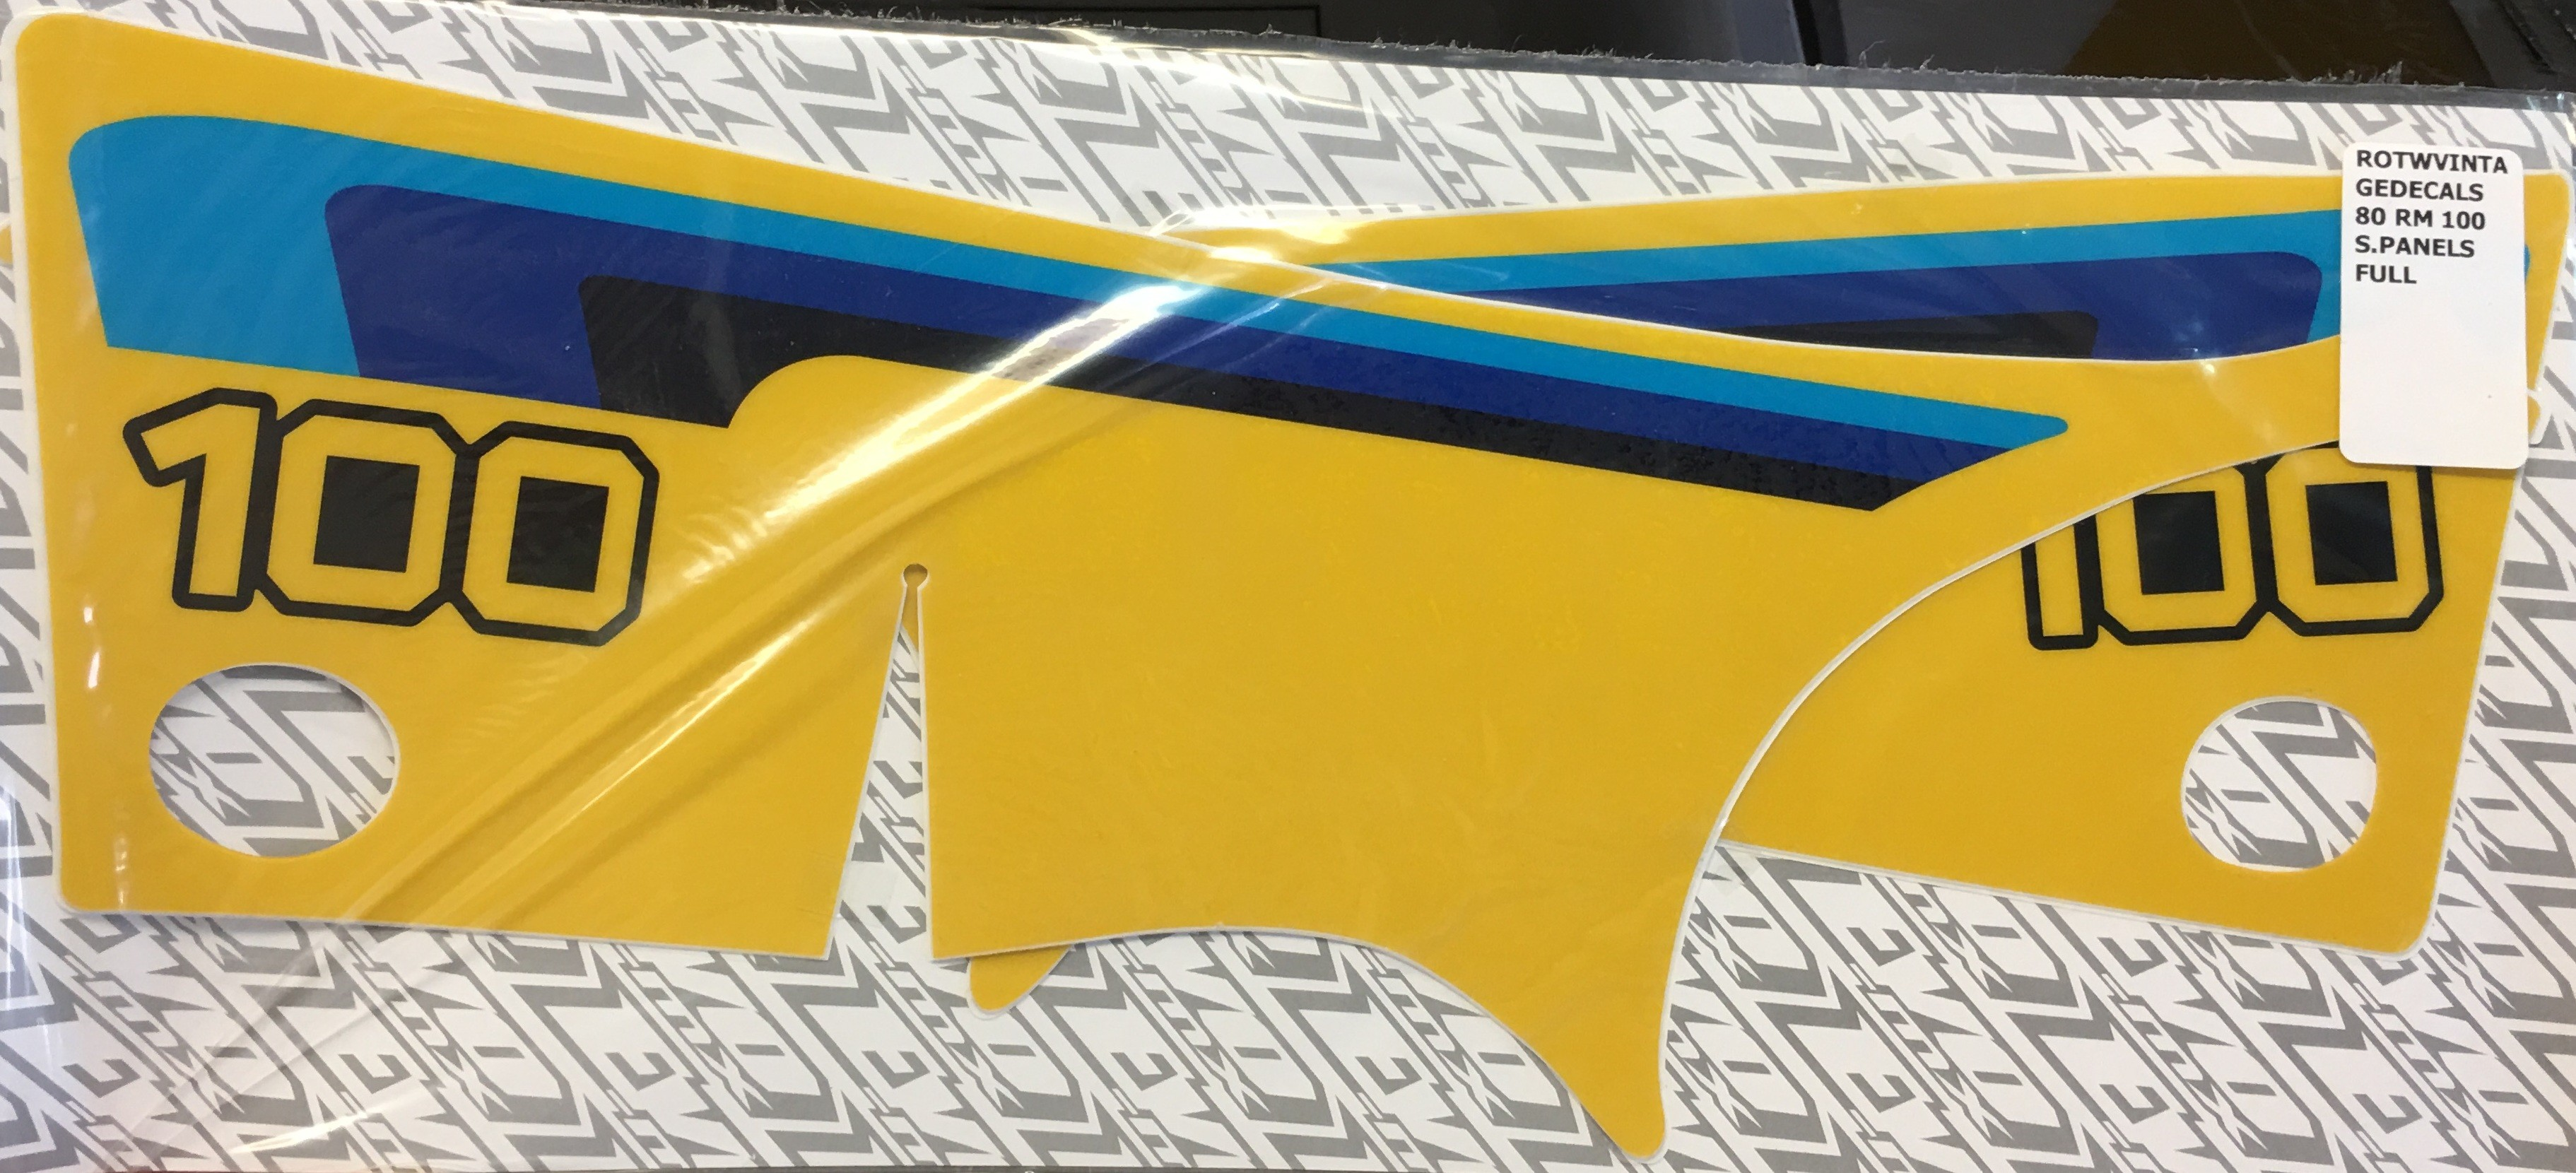 1980 Suzuki RM 100 Side Panel Decals Full Cover